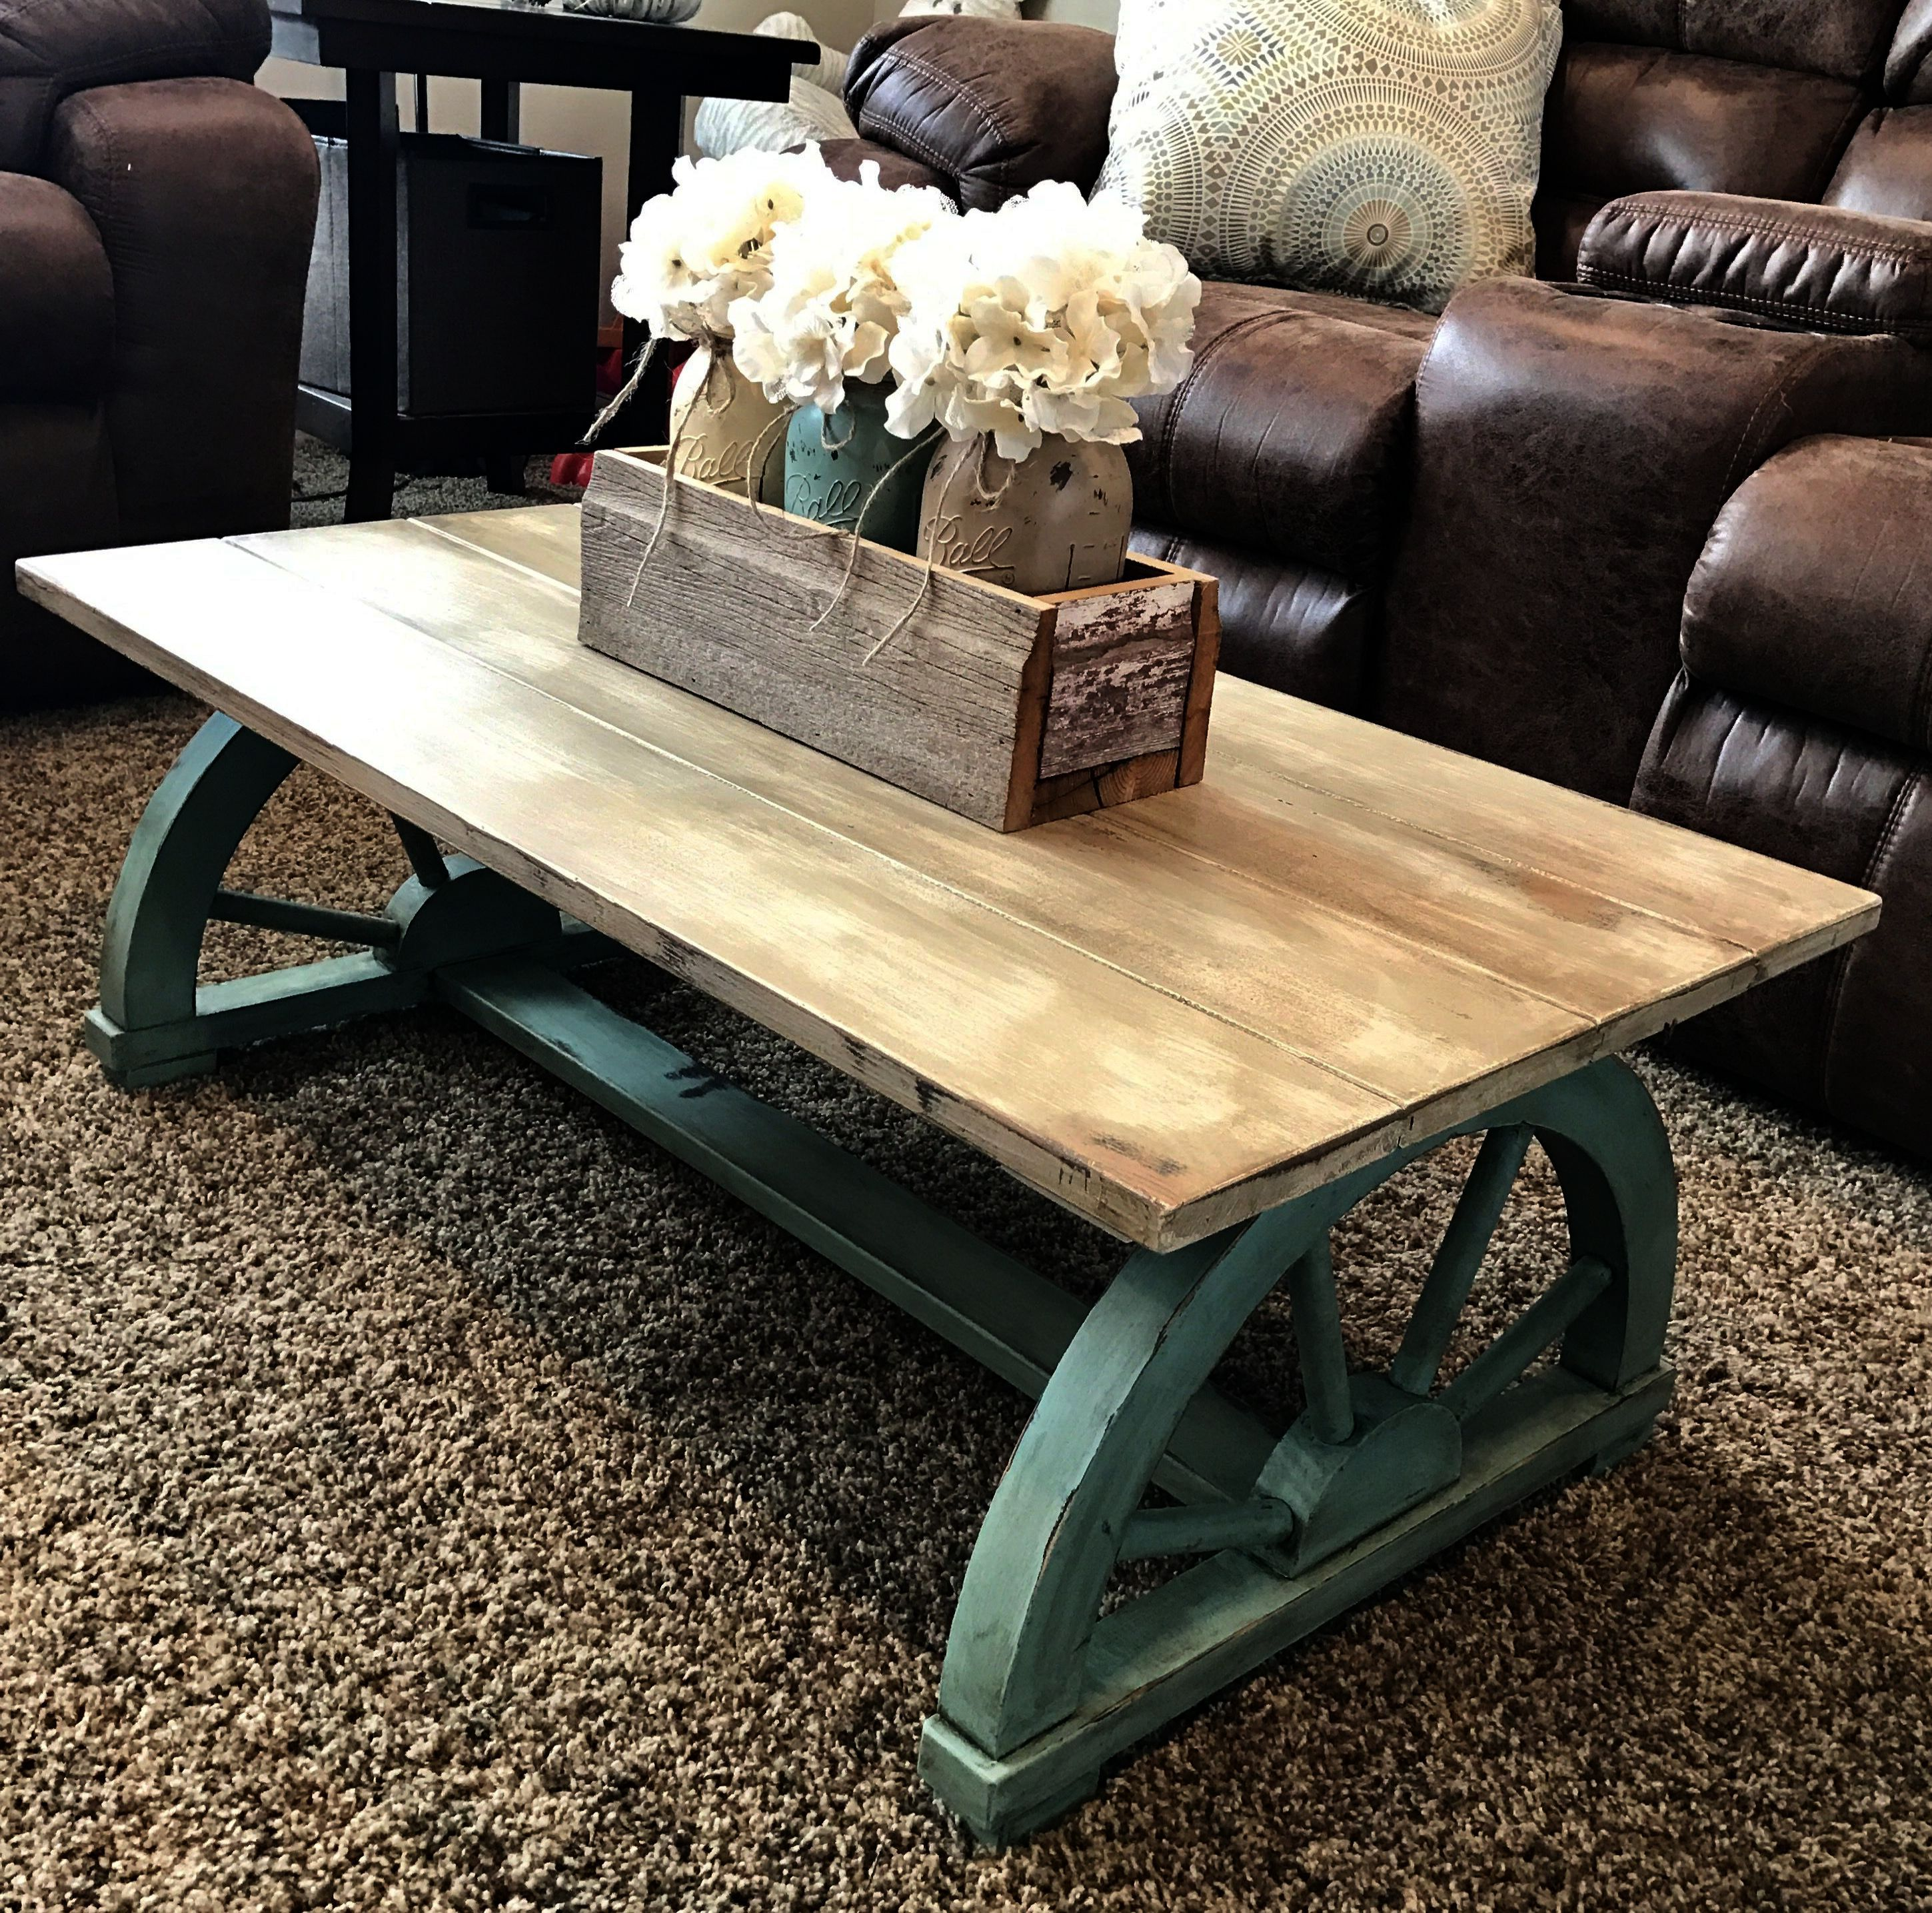 Coffee Shop Near Me Dog Friendly Coffee Shop Near Me Jersey City Considering Coffee Machine Err Coffee Table Farmhouse Country House Decor Coffee Table Design